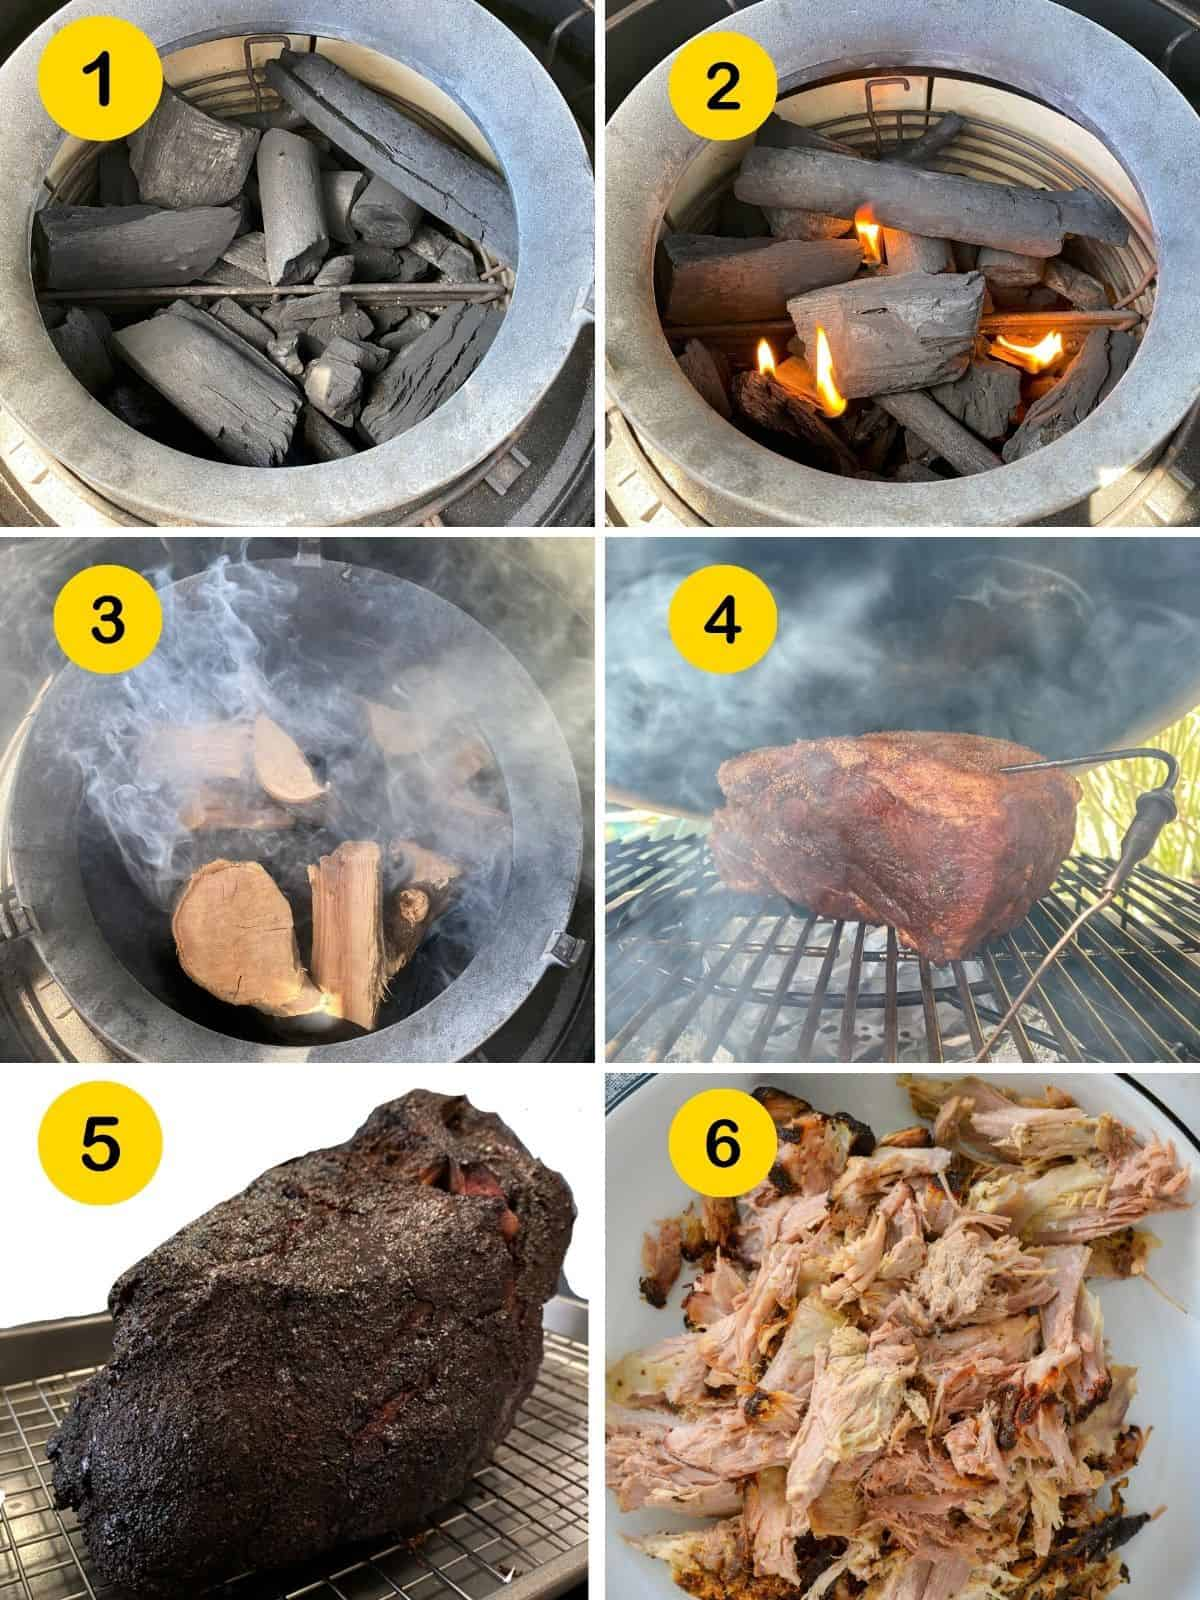 how to smoke pork butt. Step by step images.